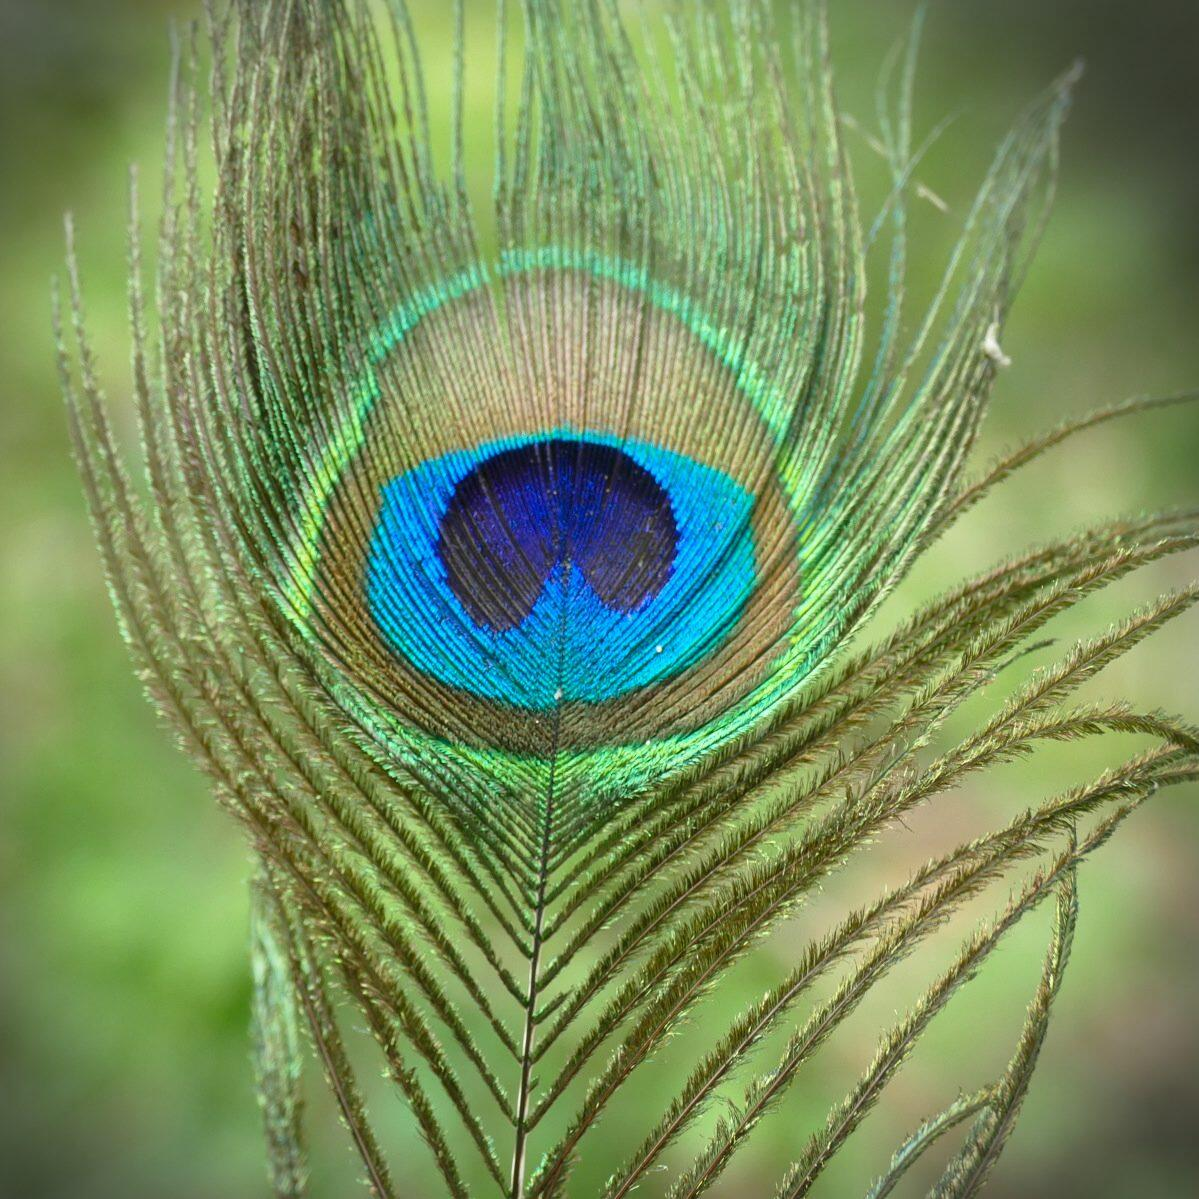 A peacock feather (from a wild, native bird) in the dry forest. Noah Strycker